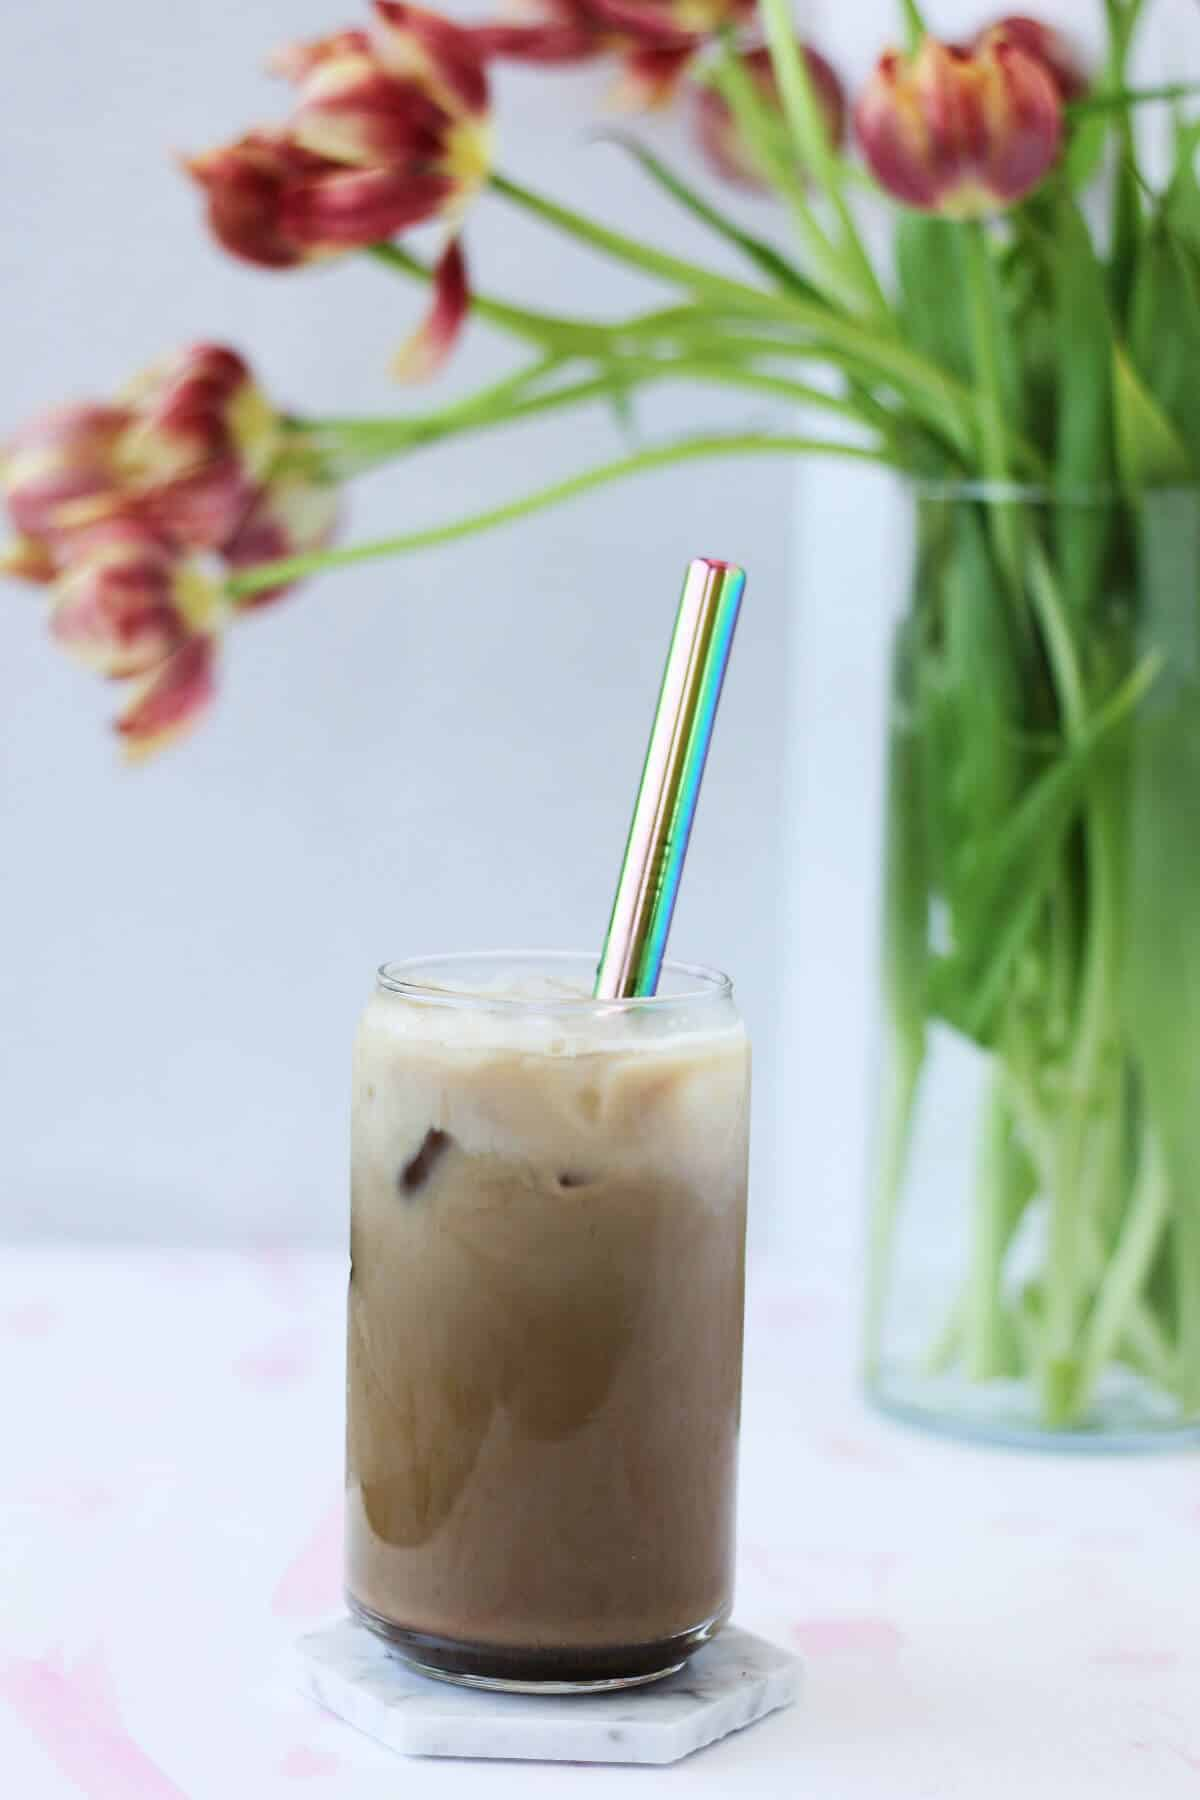 Clear glass filled with beige coffee, ice and a metal straw in front of a vase filled with pink and red flowers.